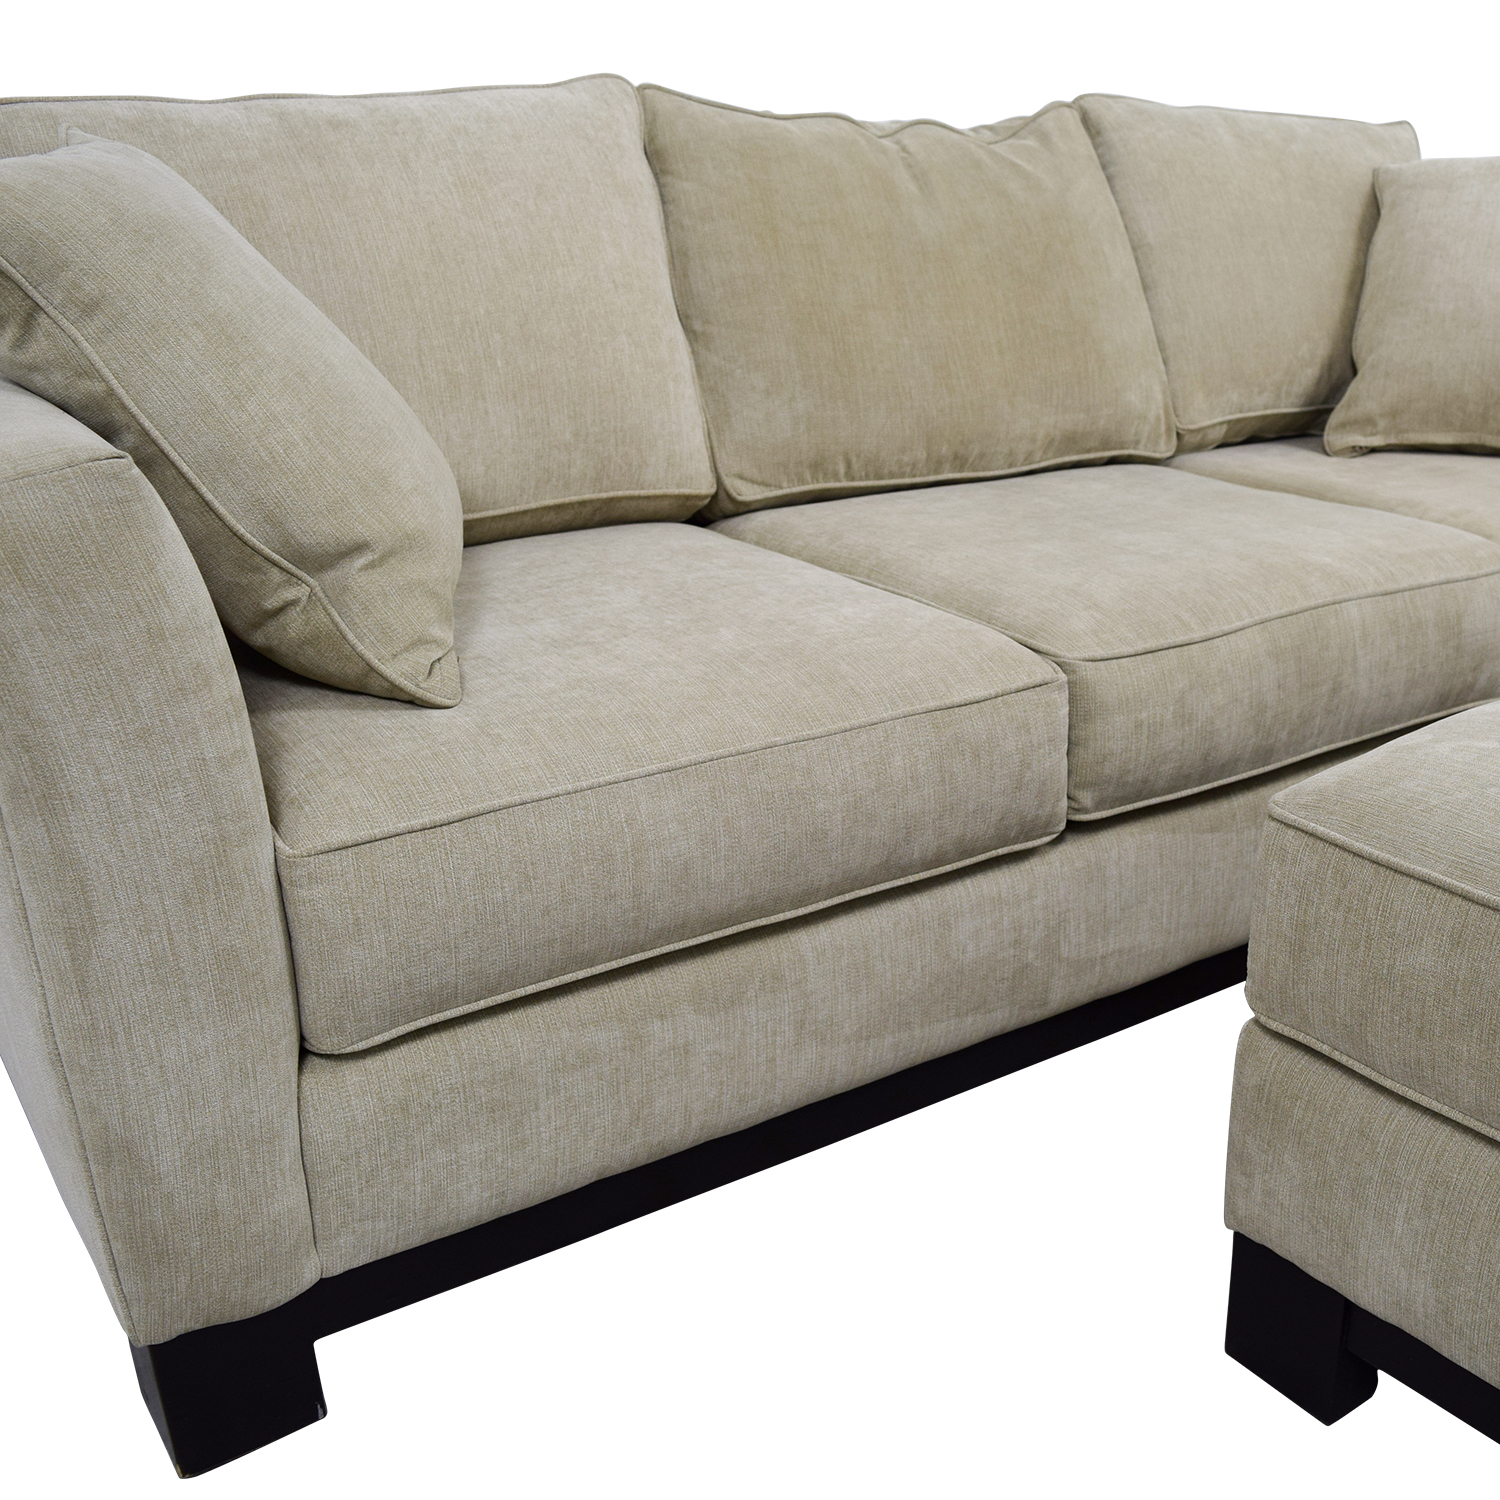 Macy's Grey Fabric Couch and Large Ottoman / Sofas